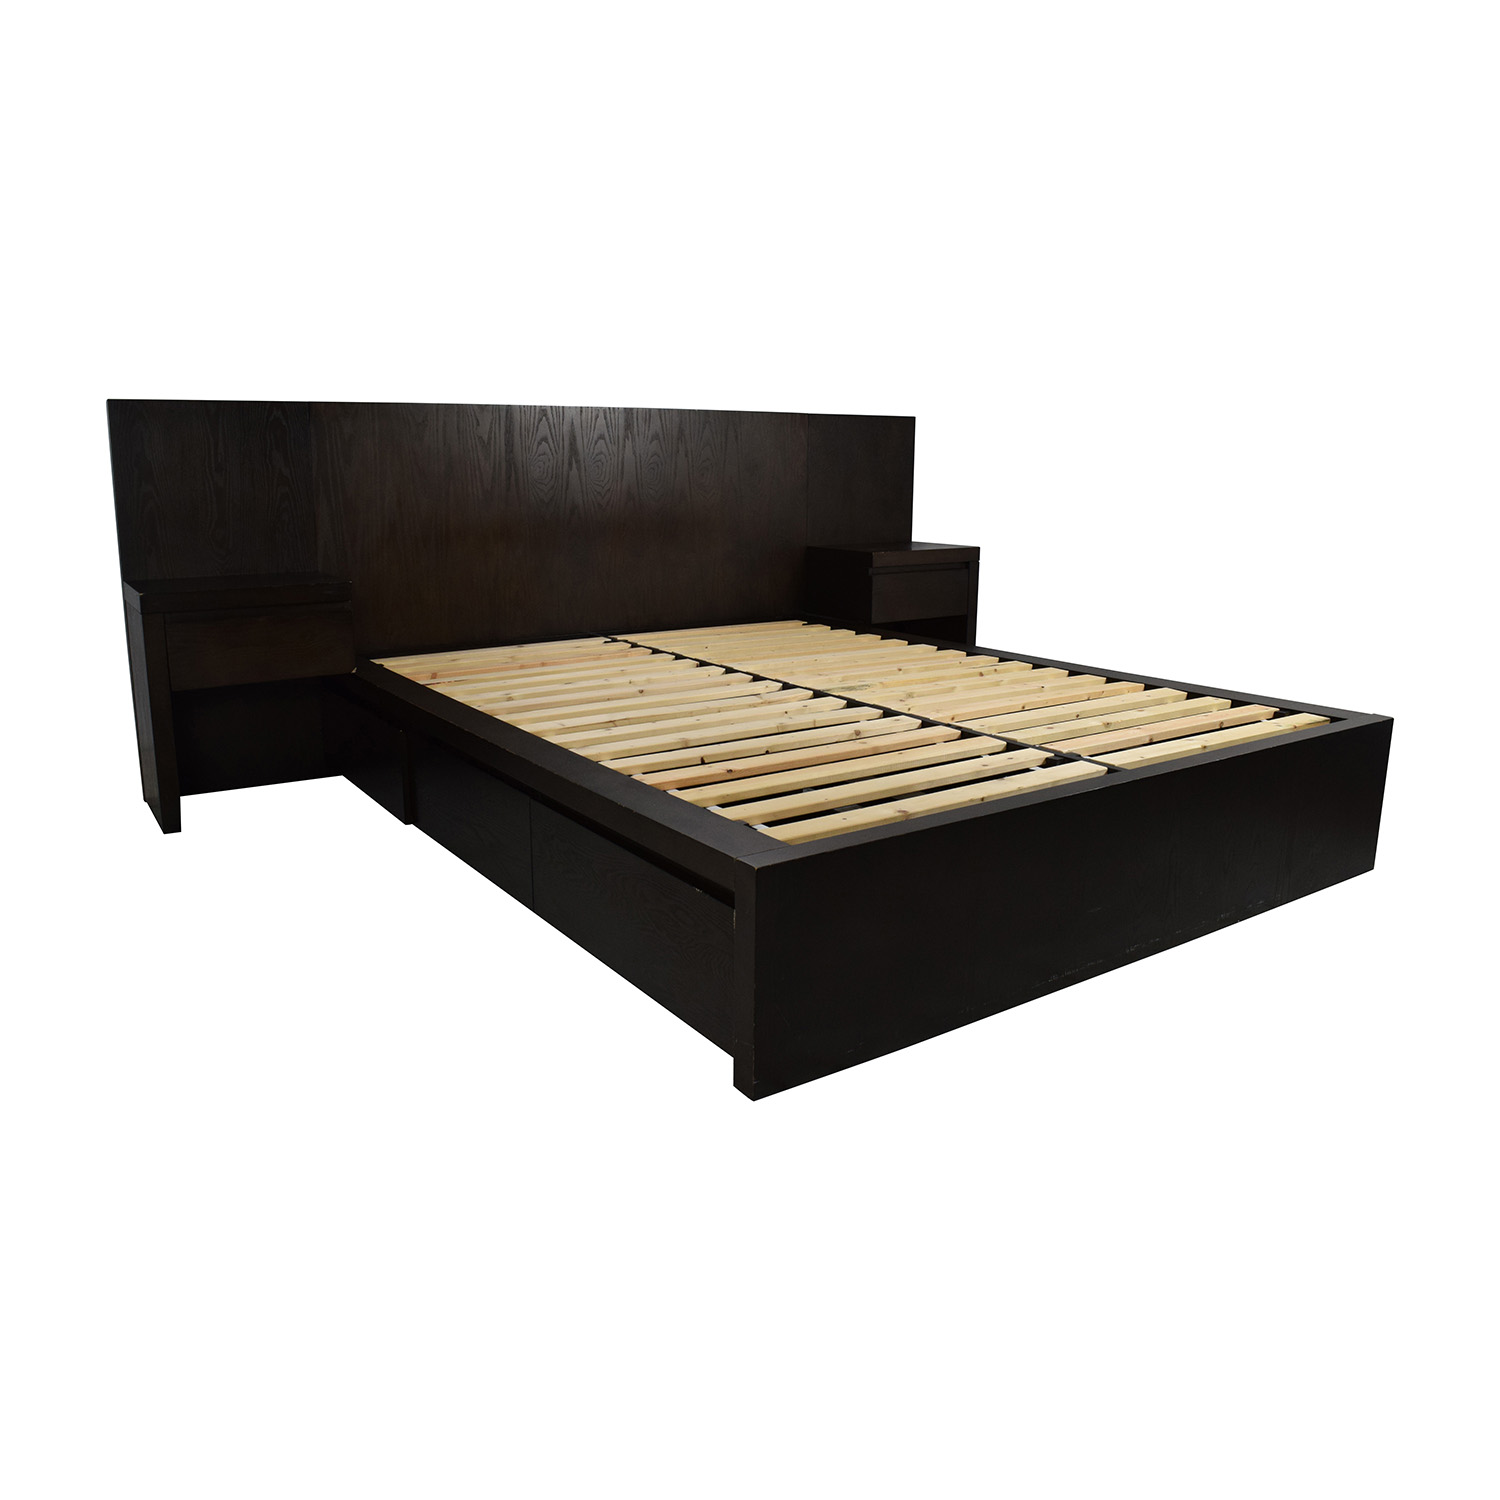 shop west elm queen size storage platform bed frame west elm